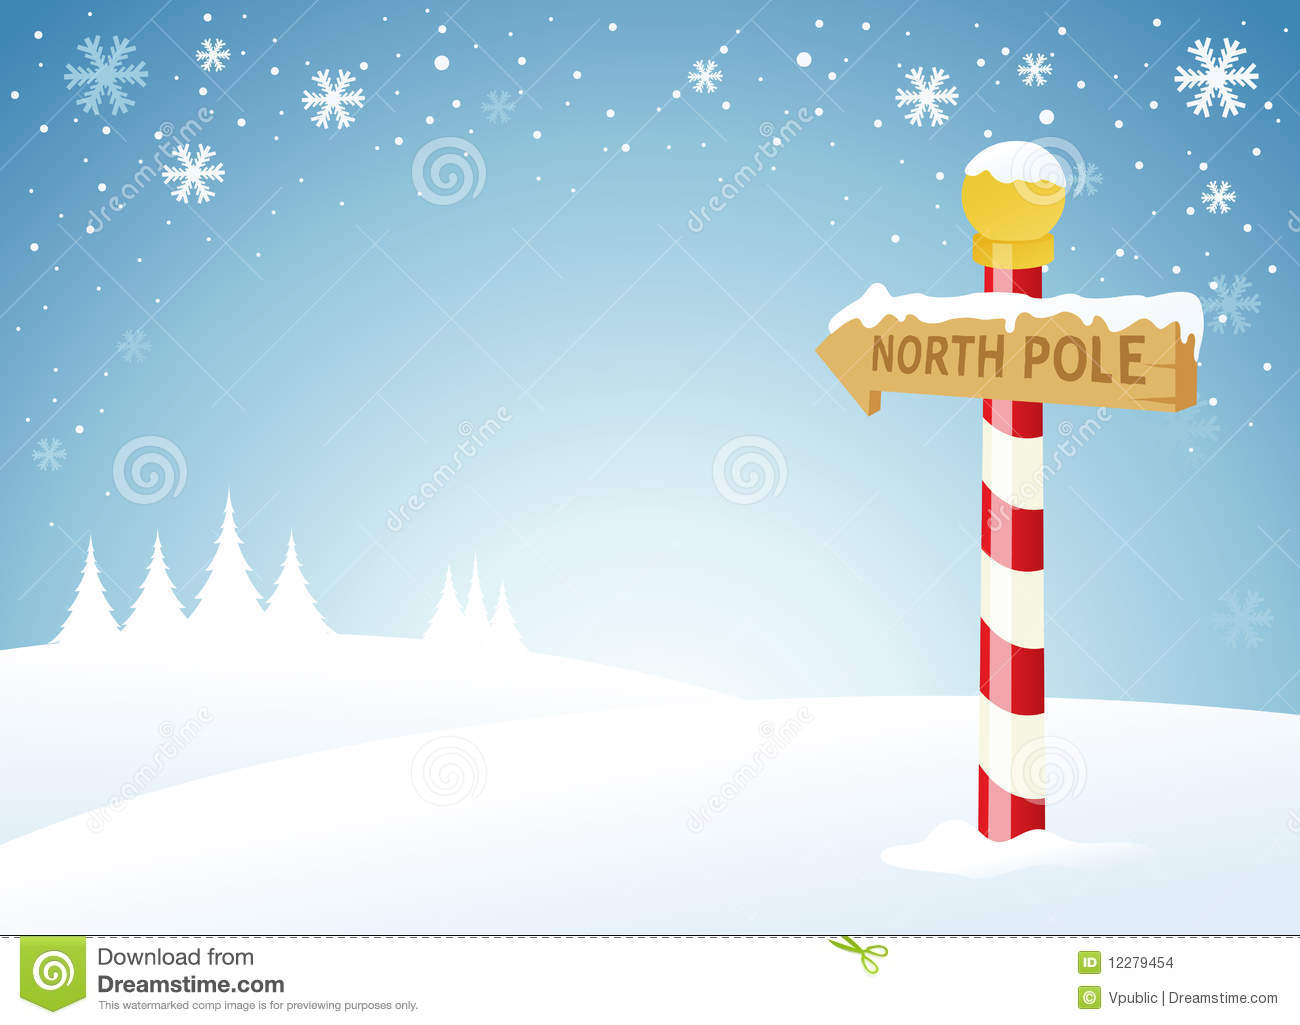 North Pole Stock Images - Image: 12279454